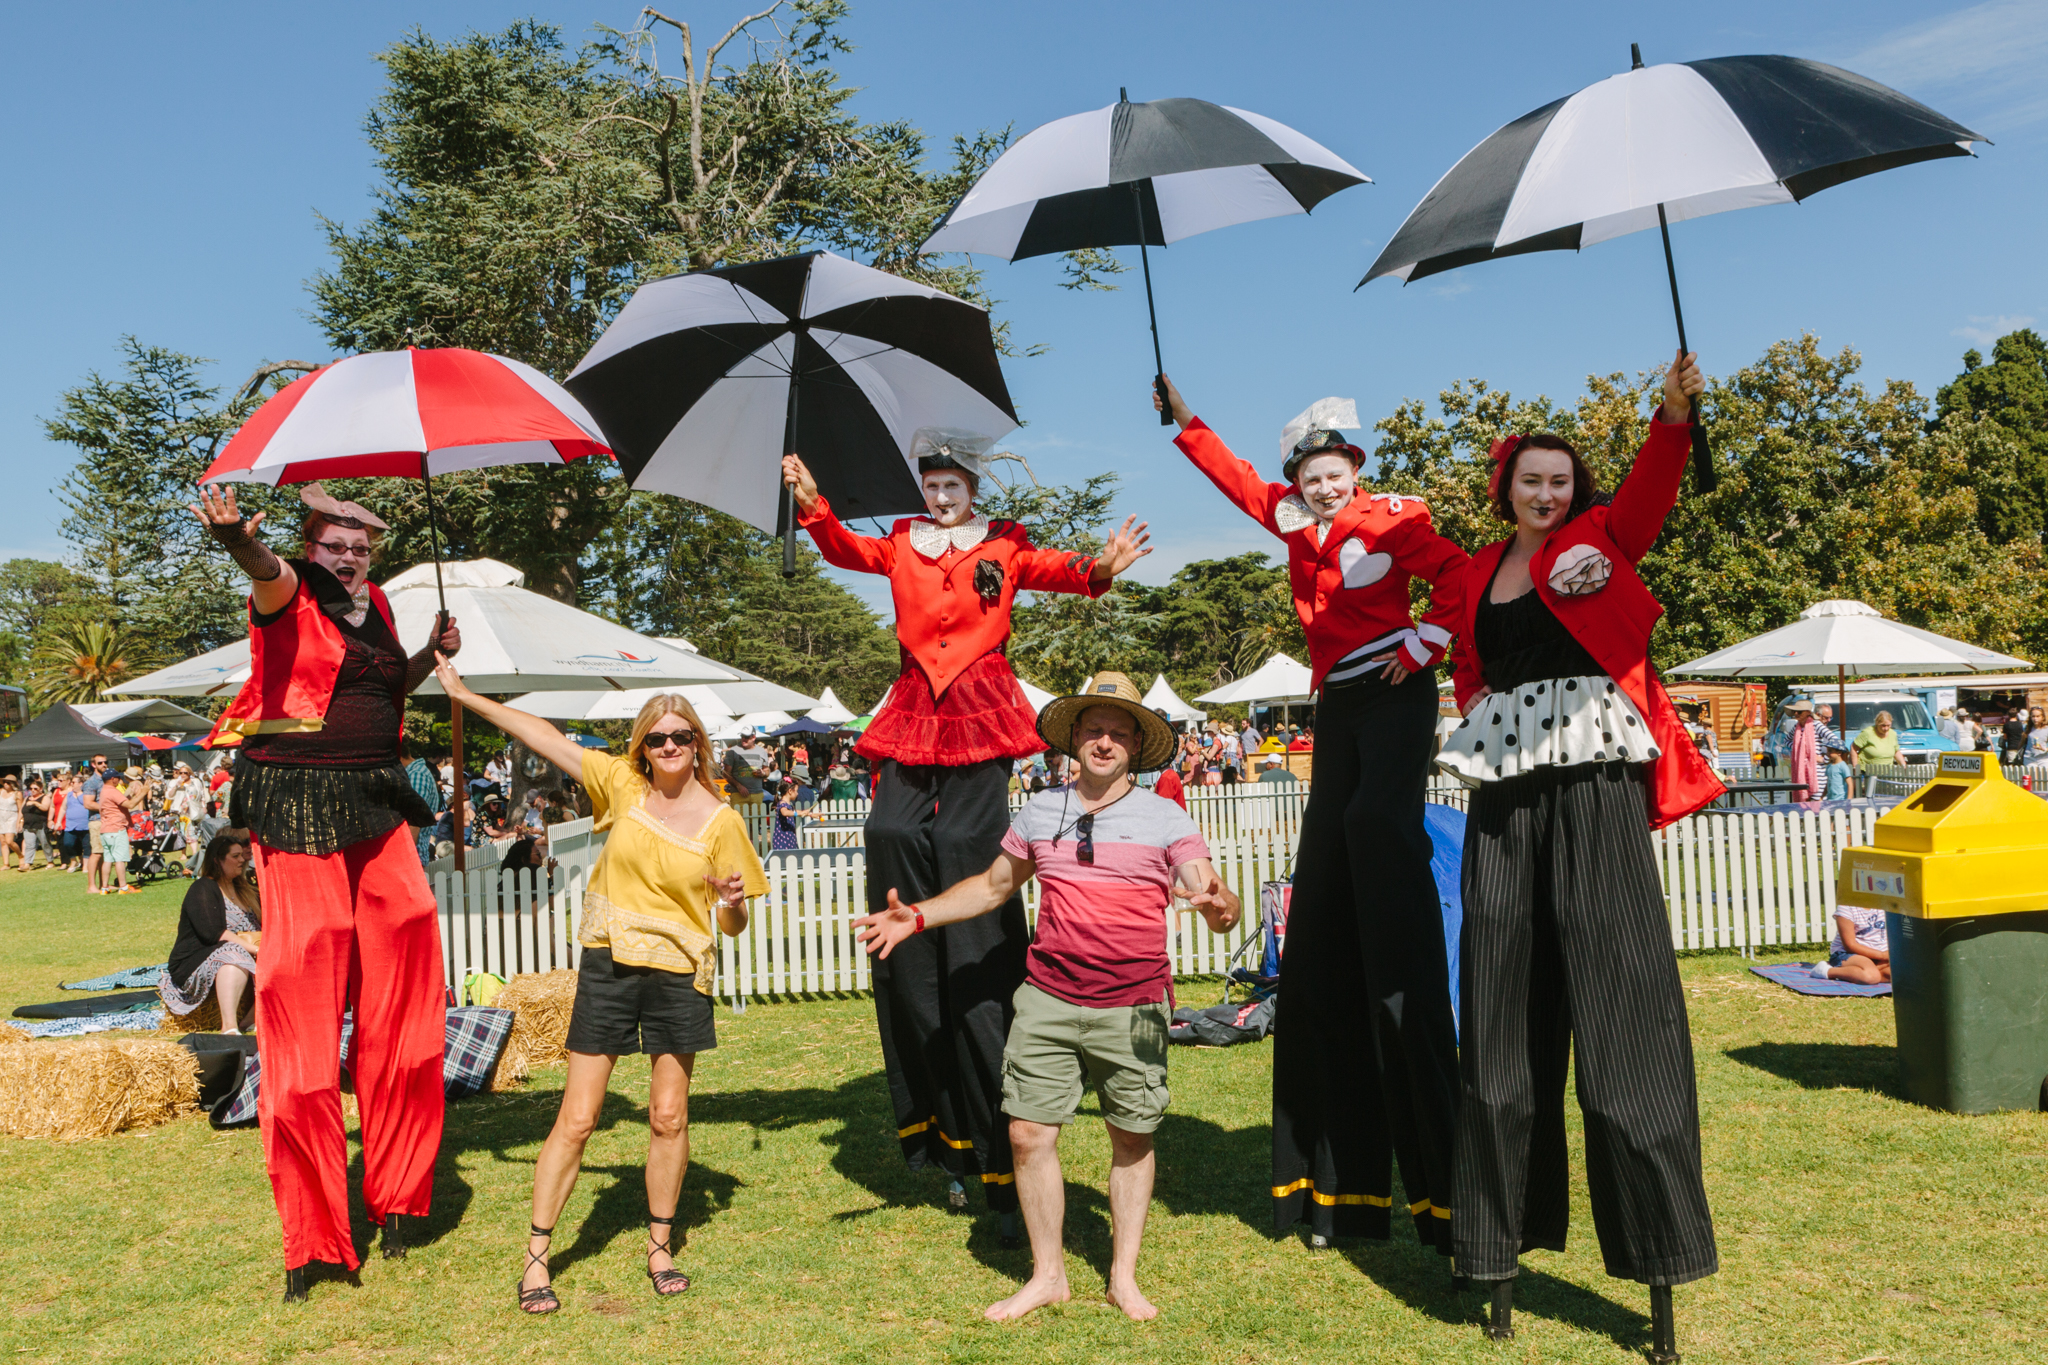 Two people posing with a group of performers on stilts while holding umbrellas.